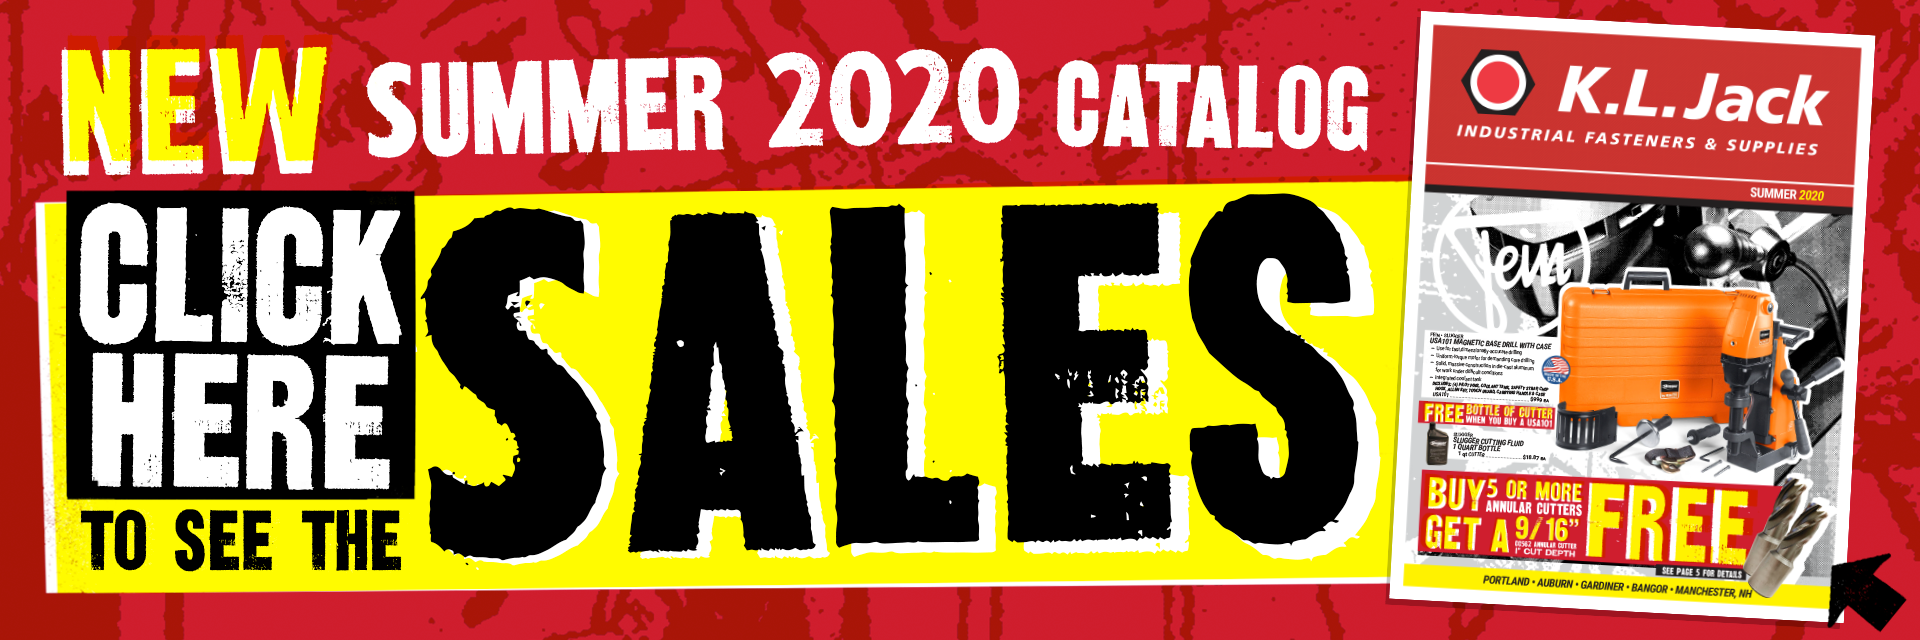 New Summer 2020 Calatog Click Here to see the Sales